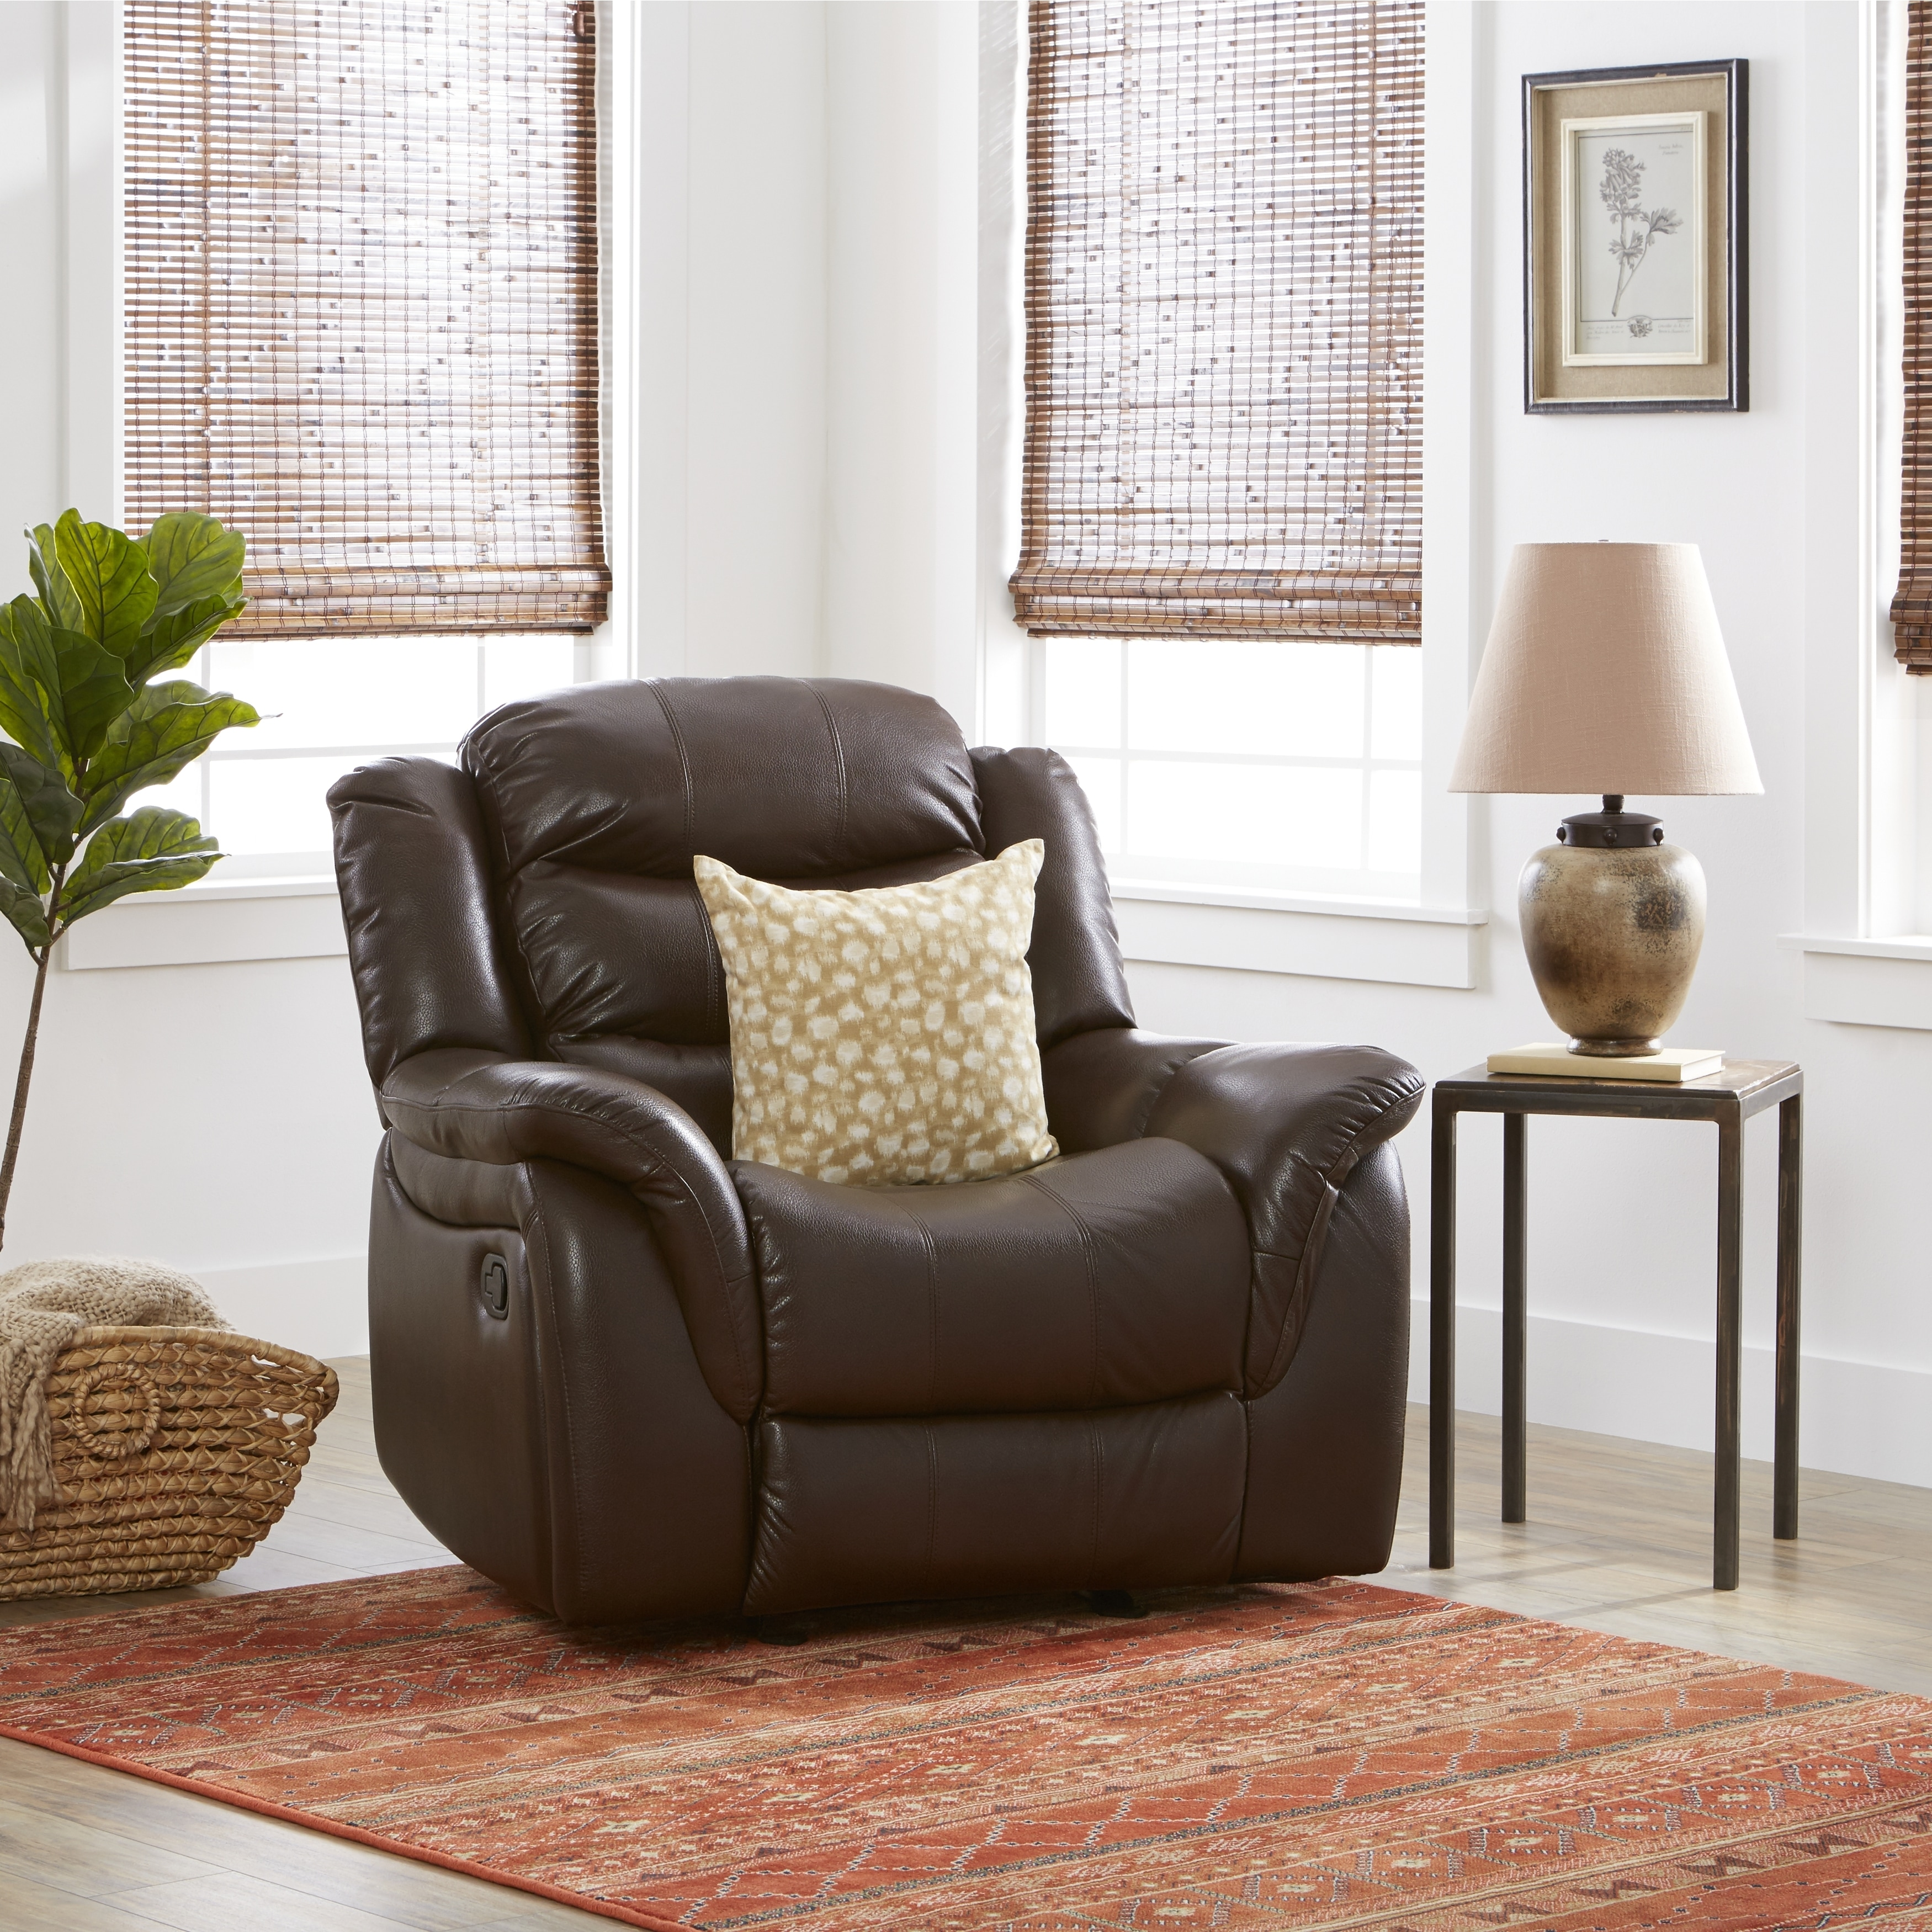 asp glider recliner swivel brown leather